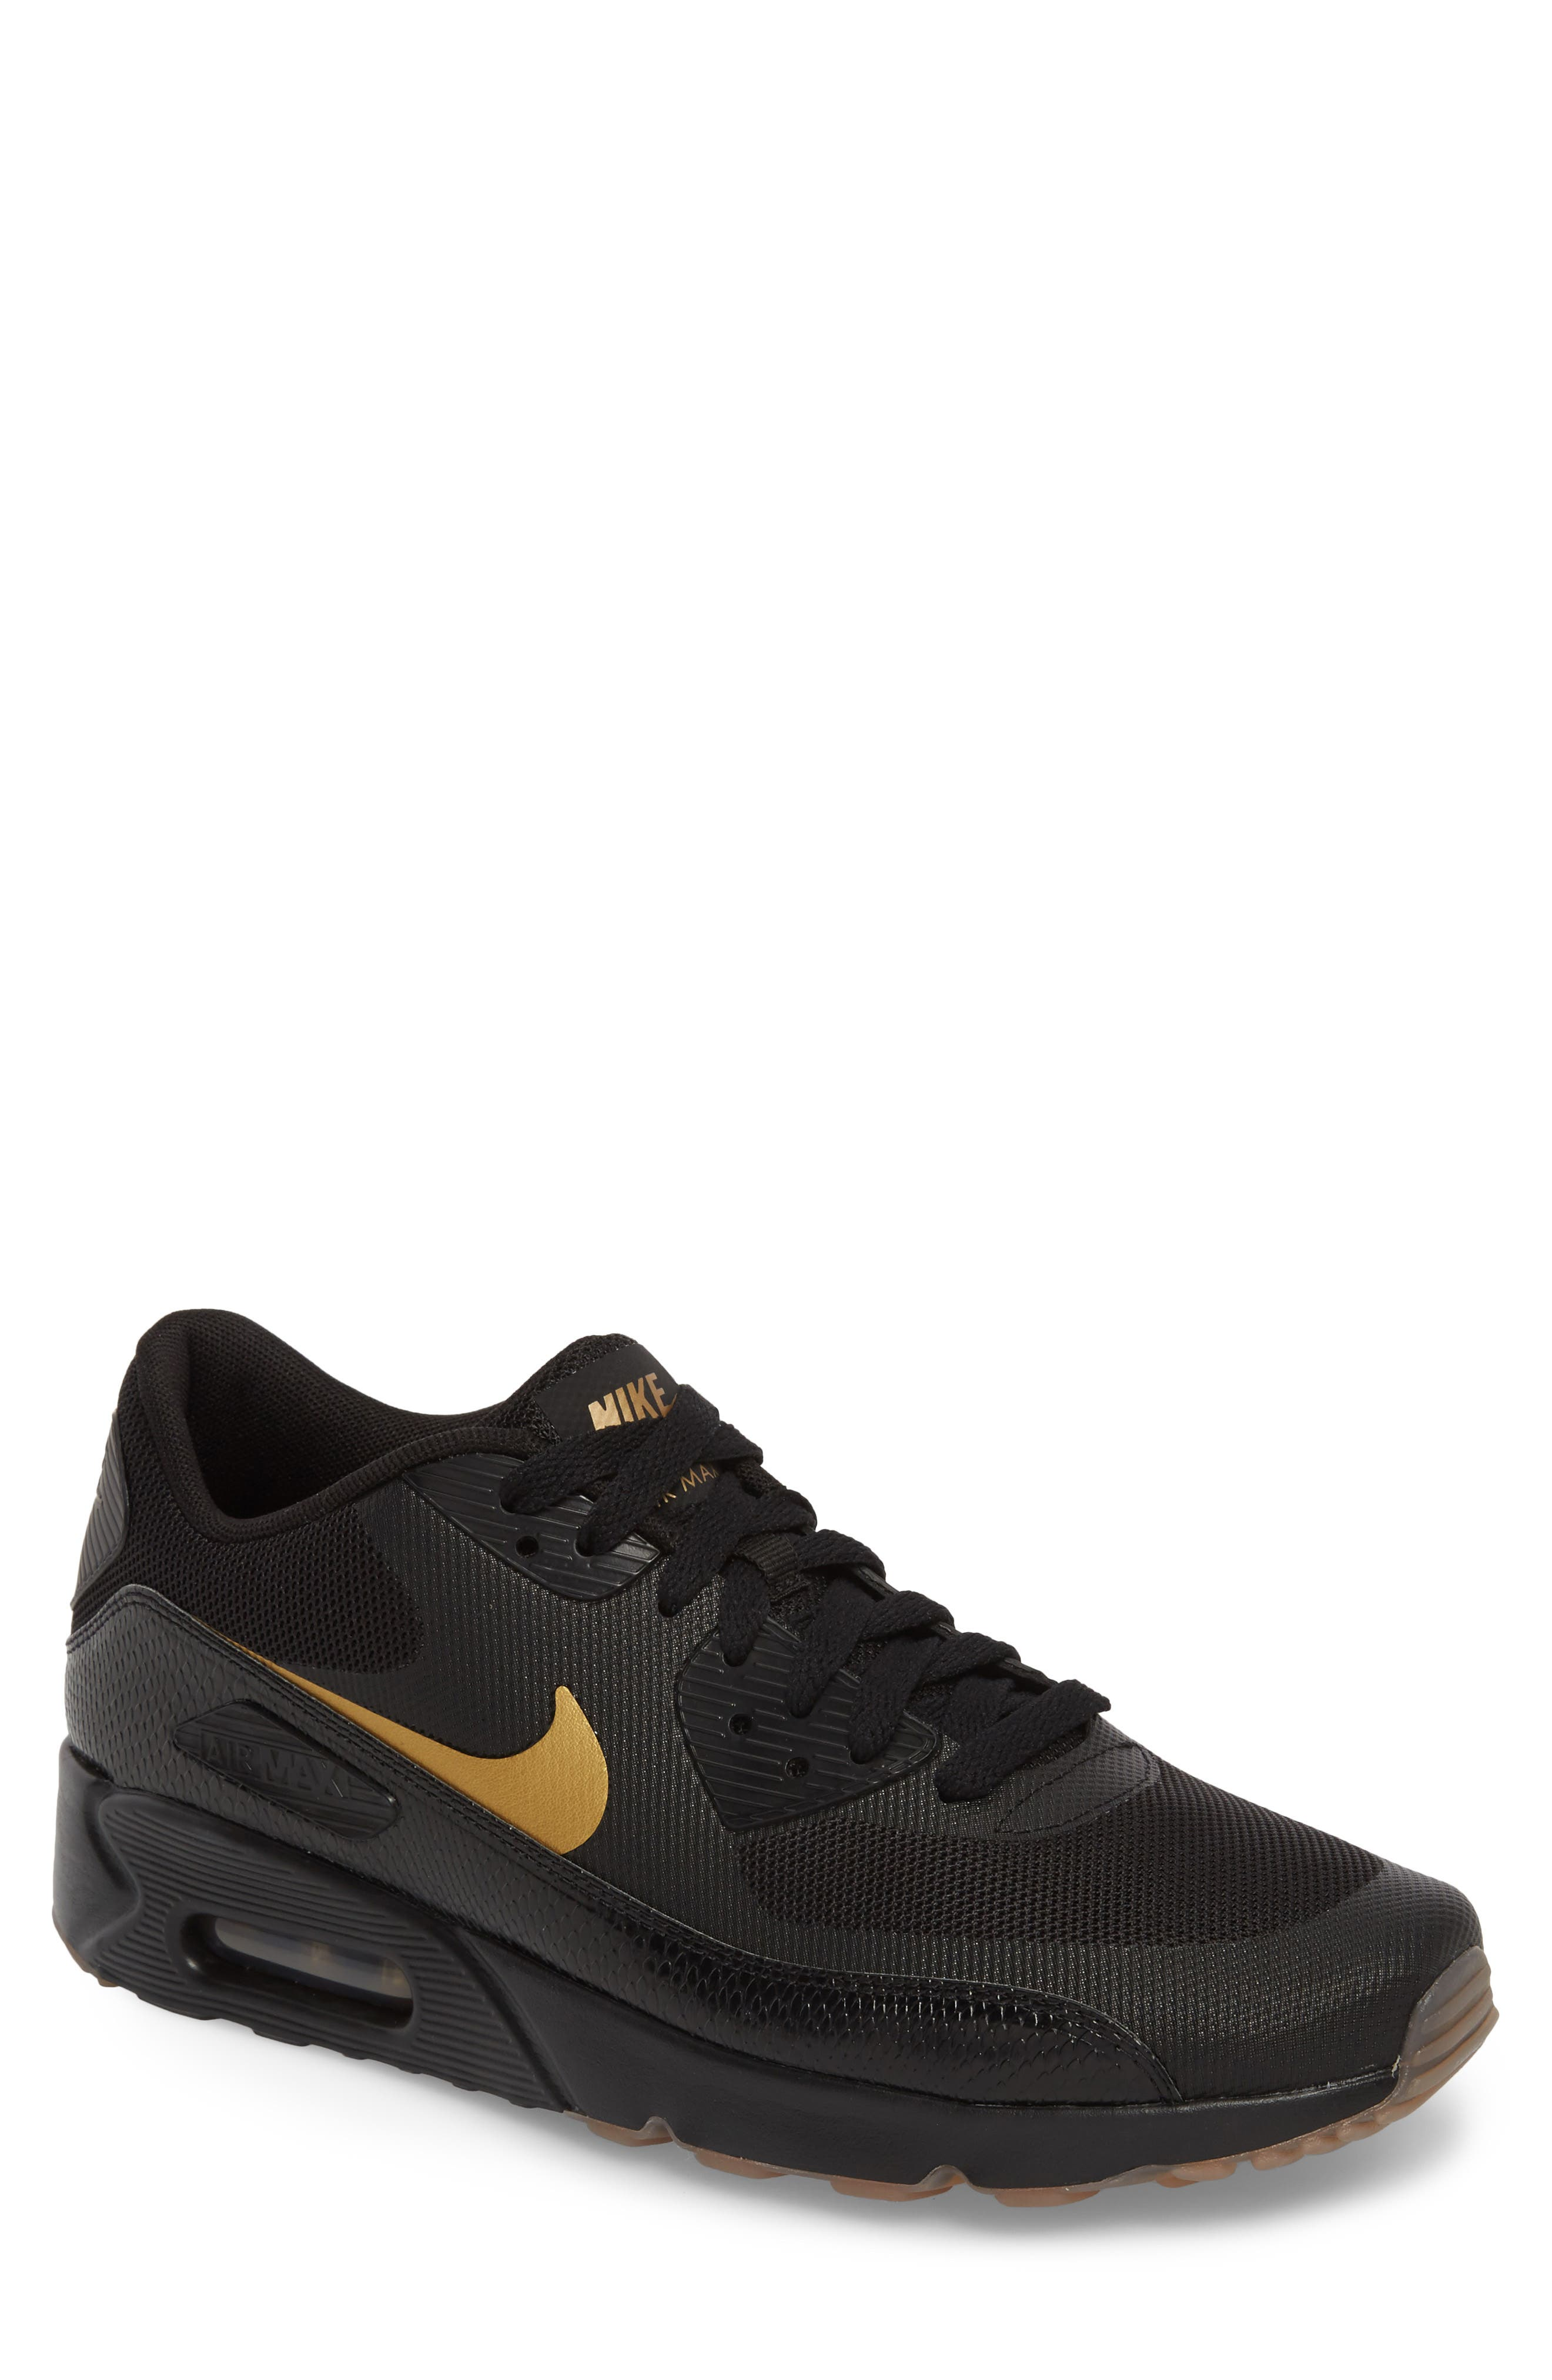 Air Max 90 Ultra 2.0 Essential Sneaker,                         Main,                         color, 016